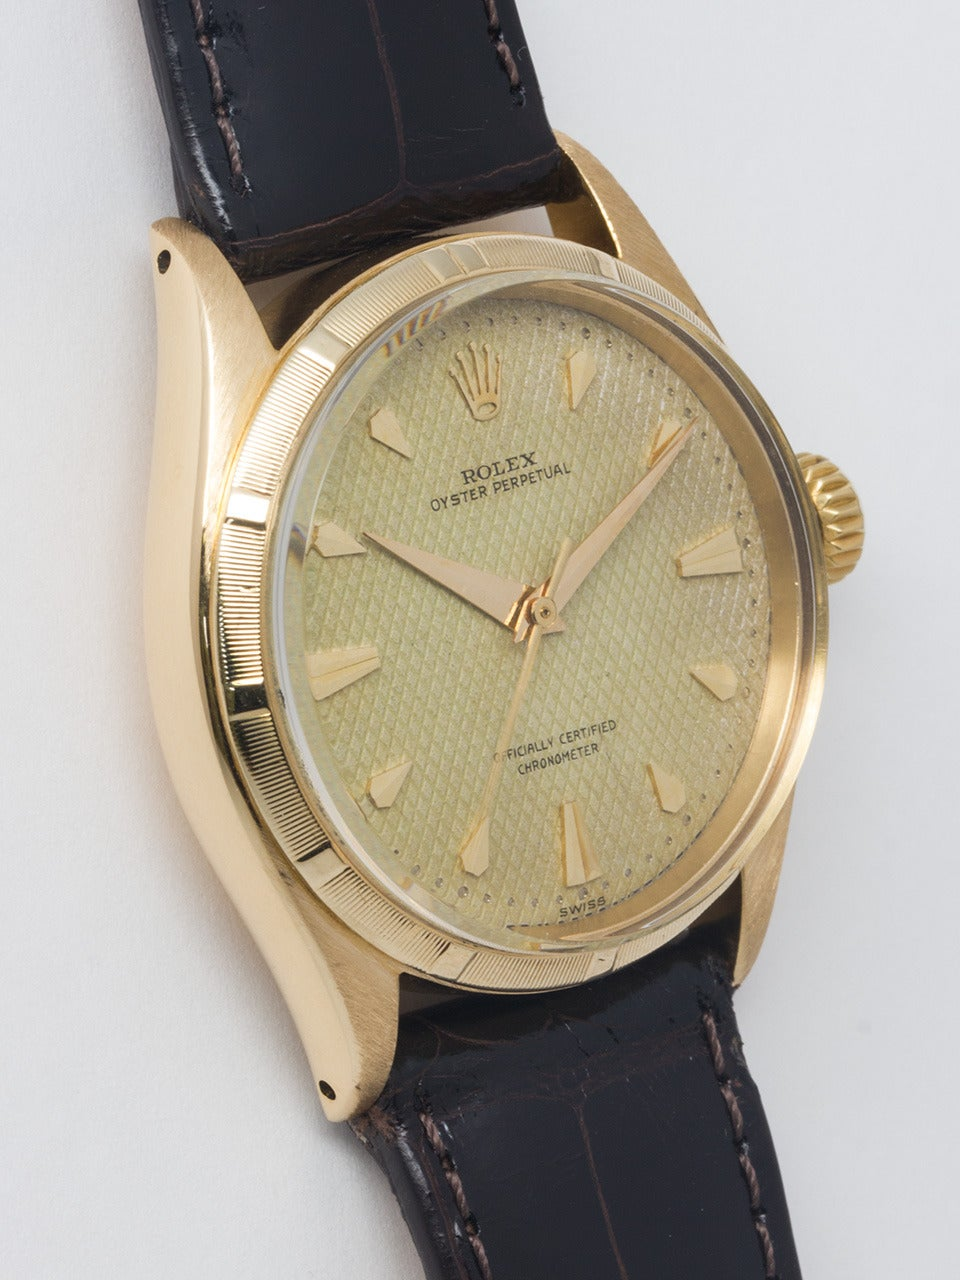 Rolex Yellow Gold Oyster Perpetual Wristwatch Ref 6085 circa 1953